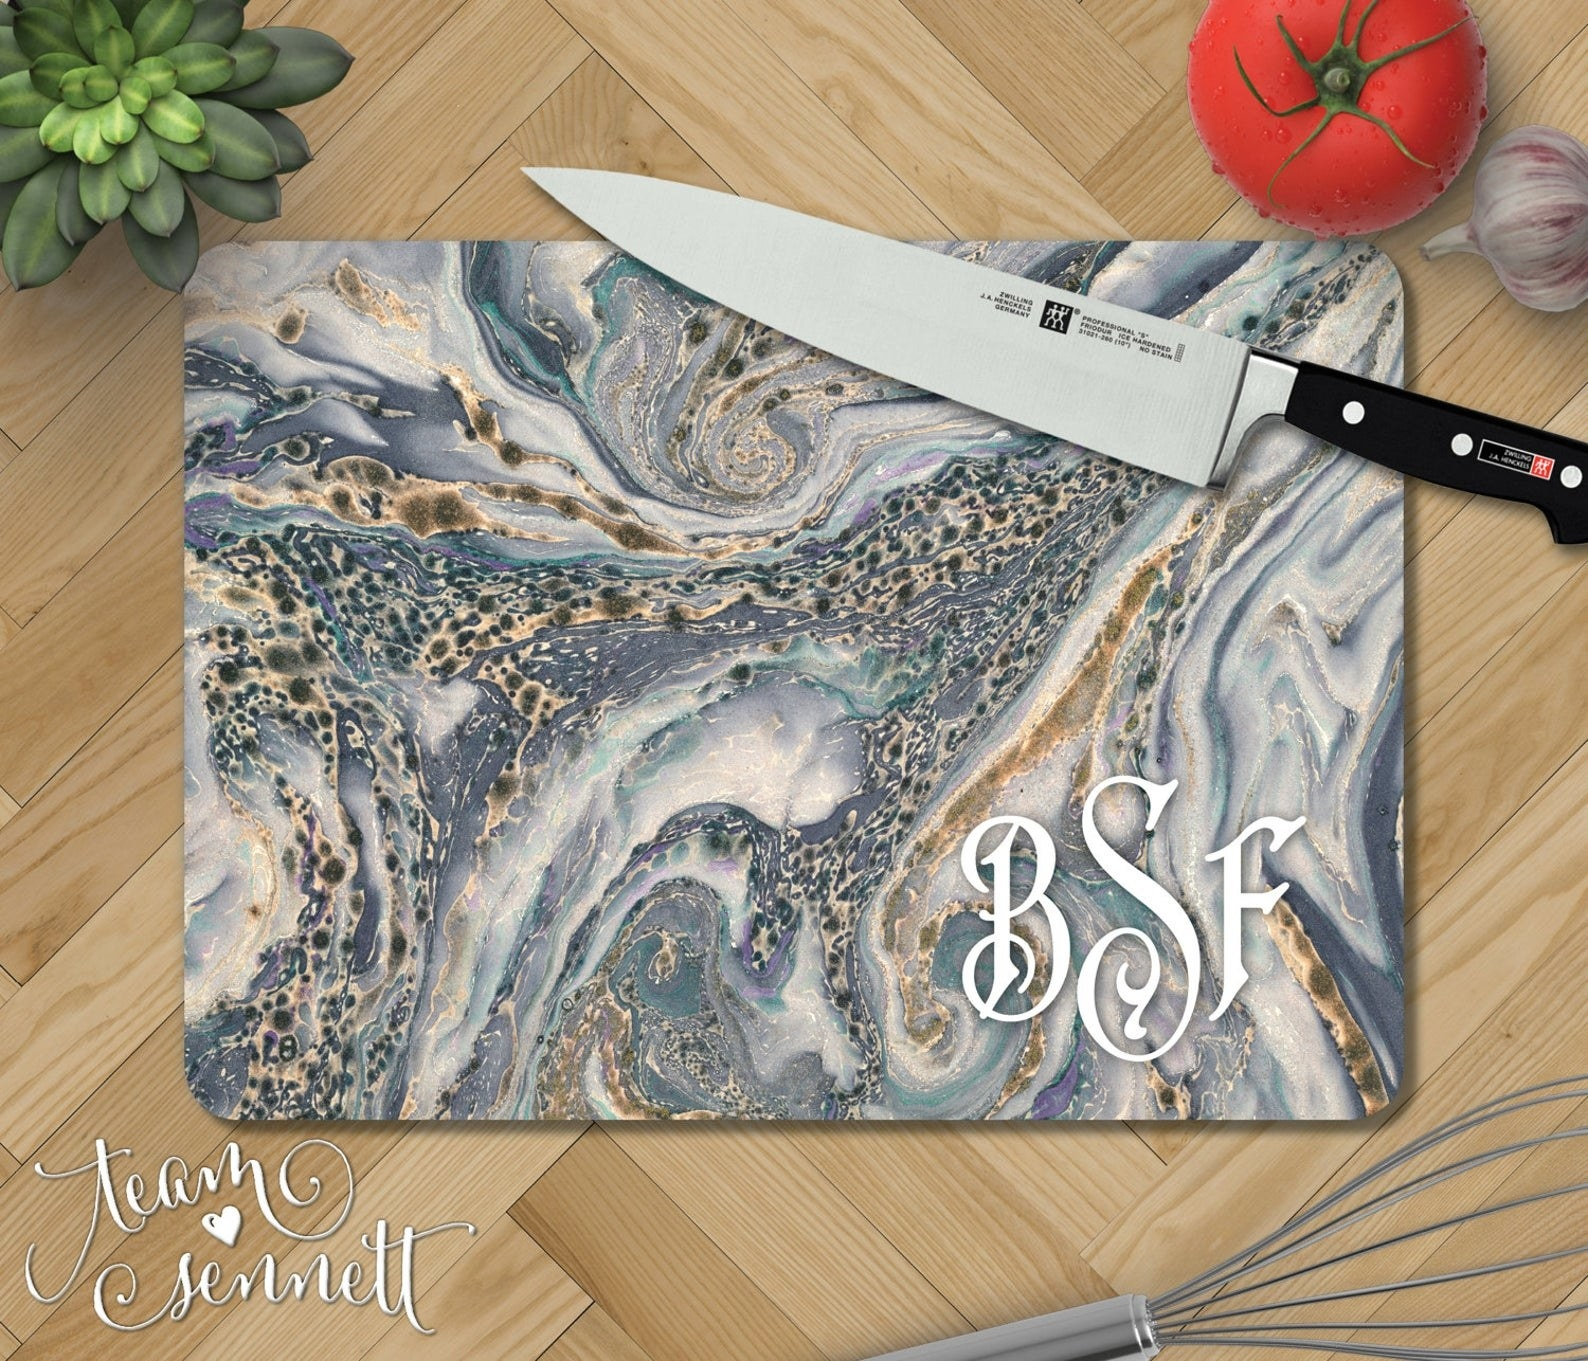 Personalized marbled cutting board placed on counter